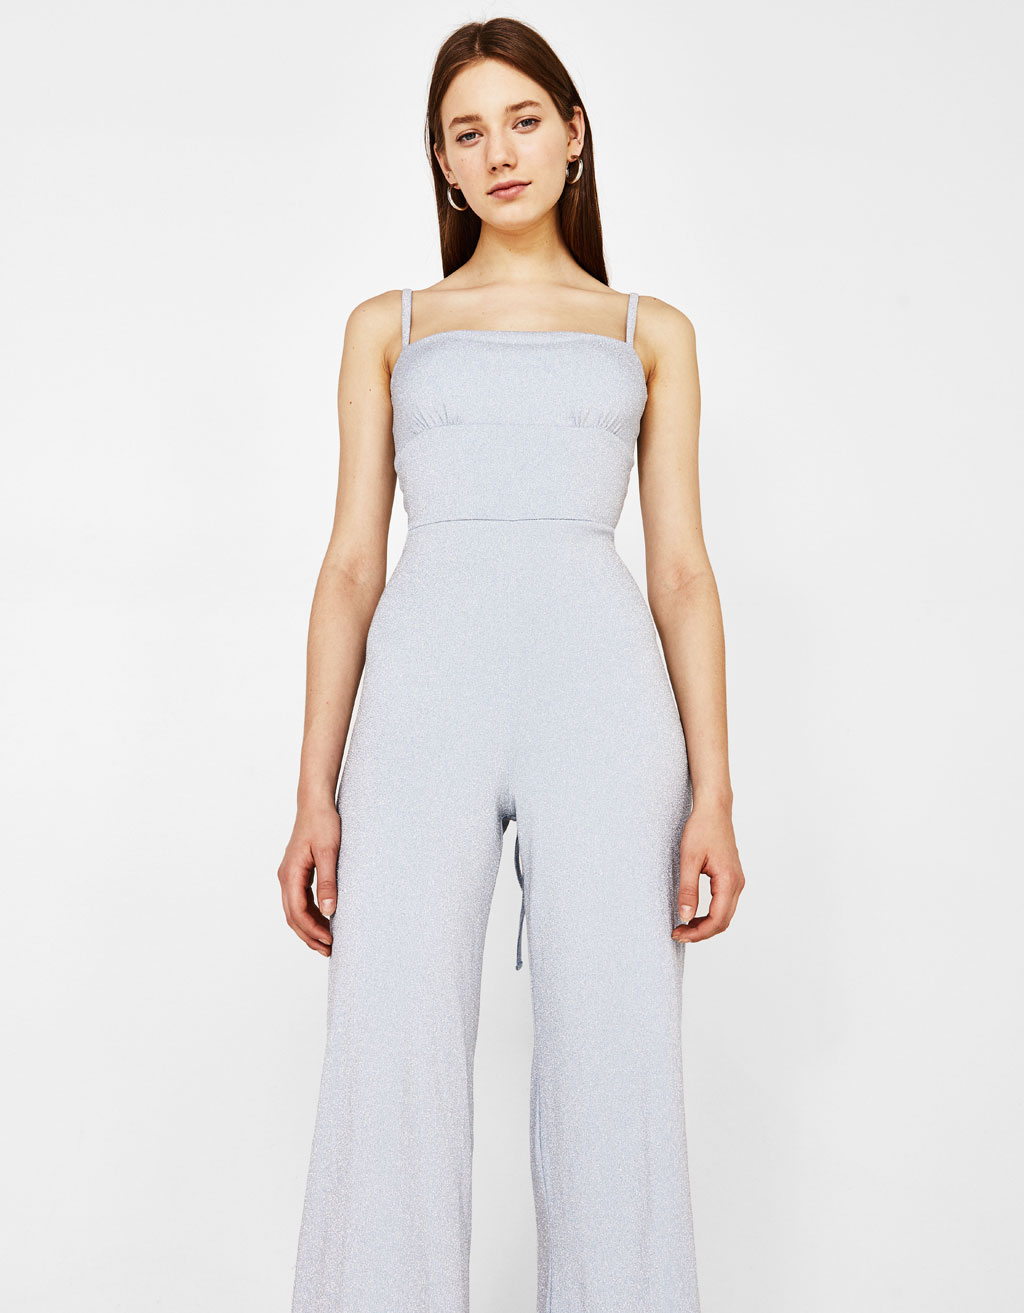 Culotte jumpsuit in shimmer thread